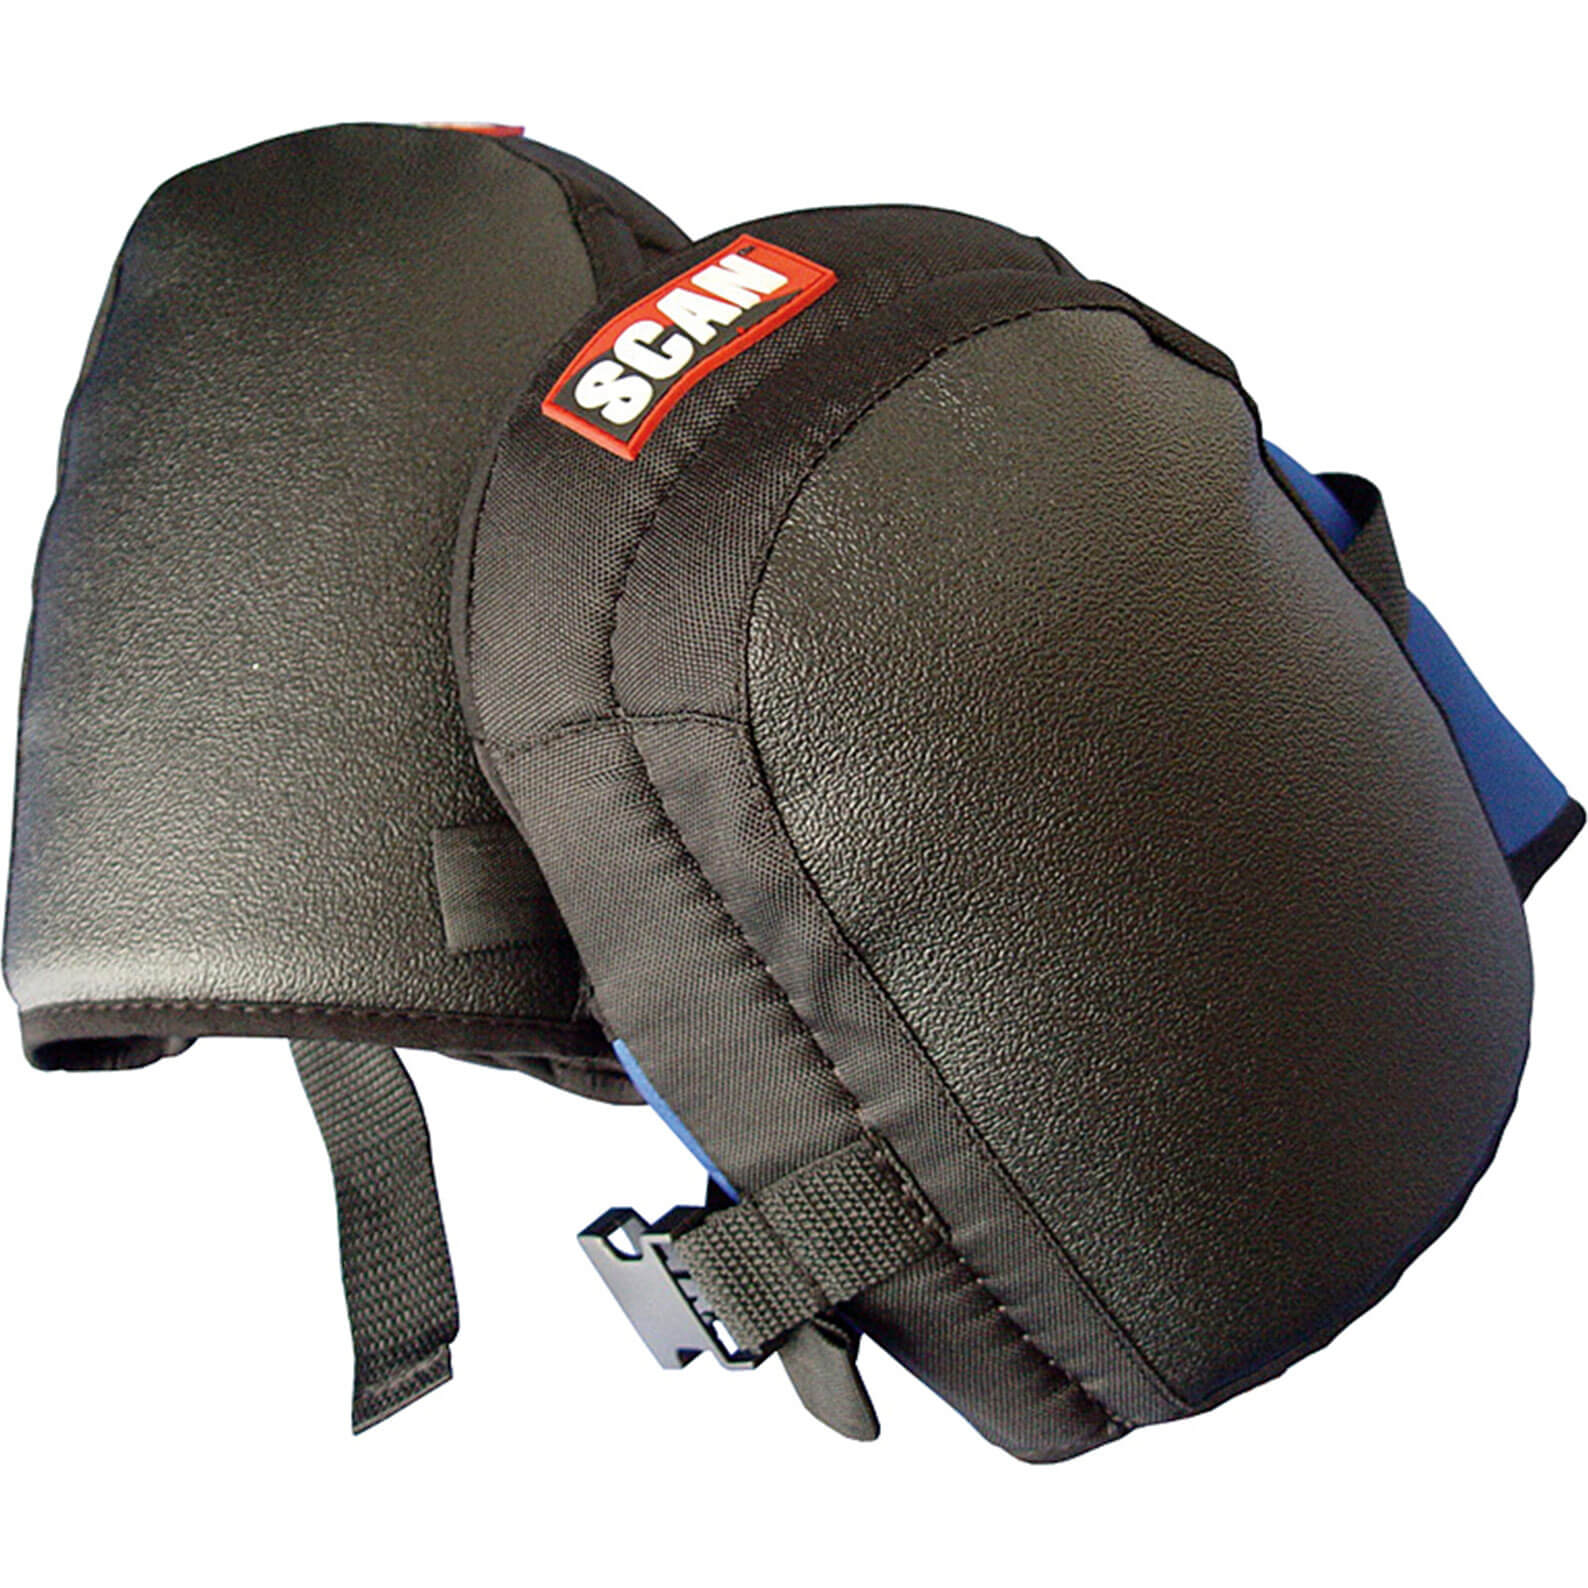 Image of Scan Professional Kneepads